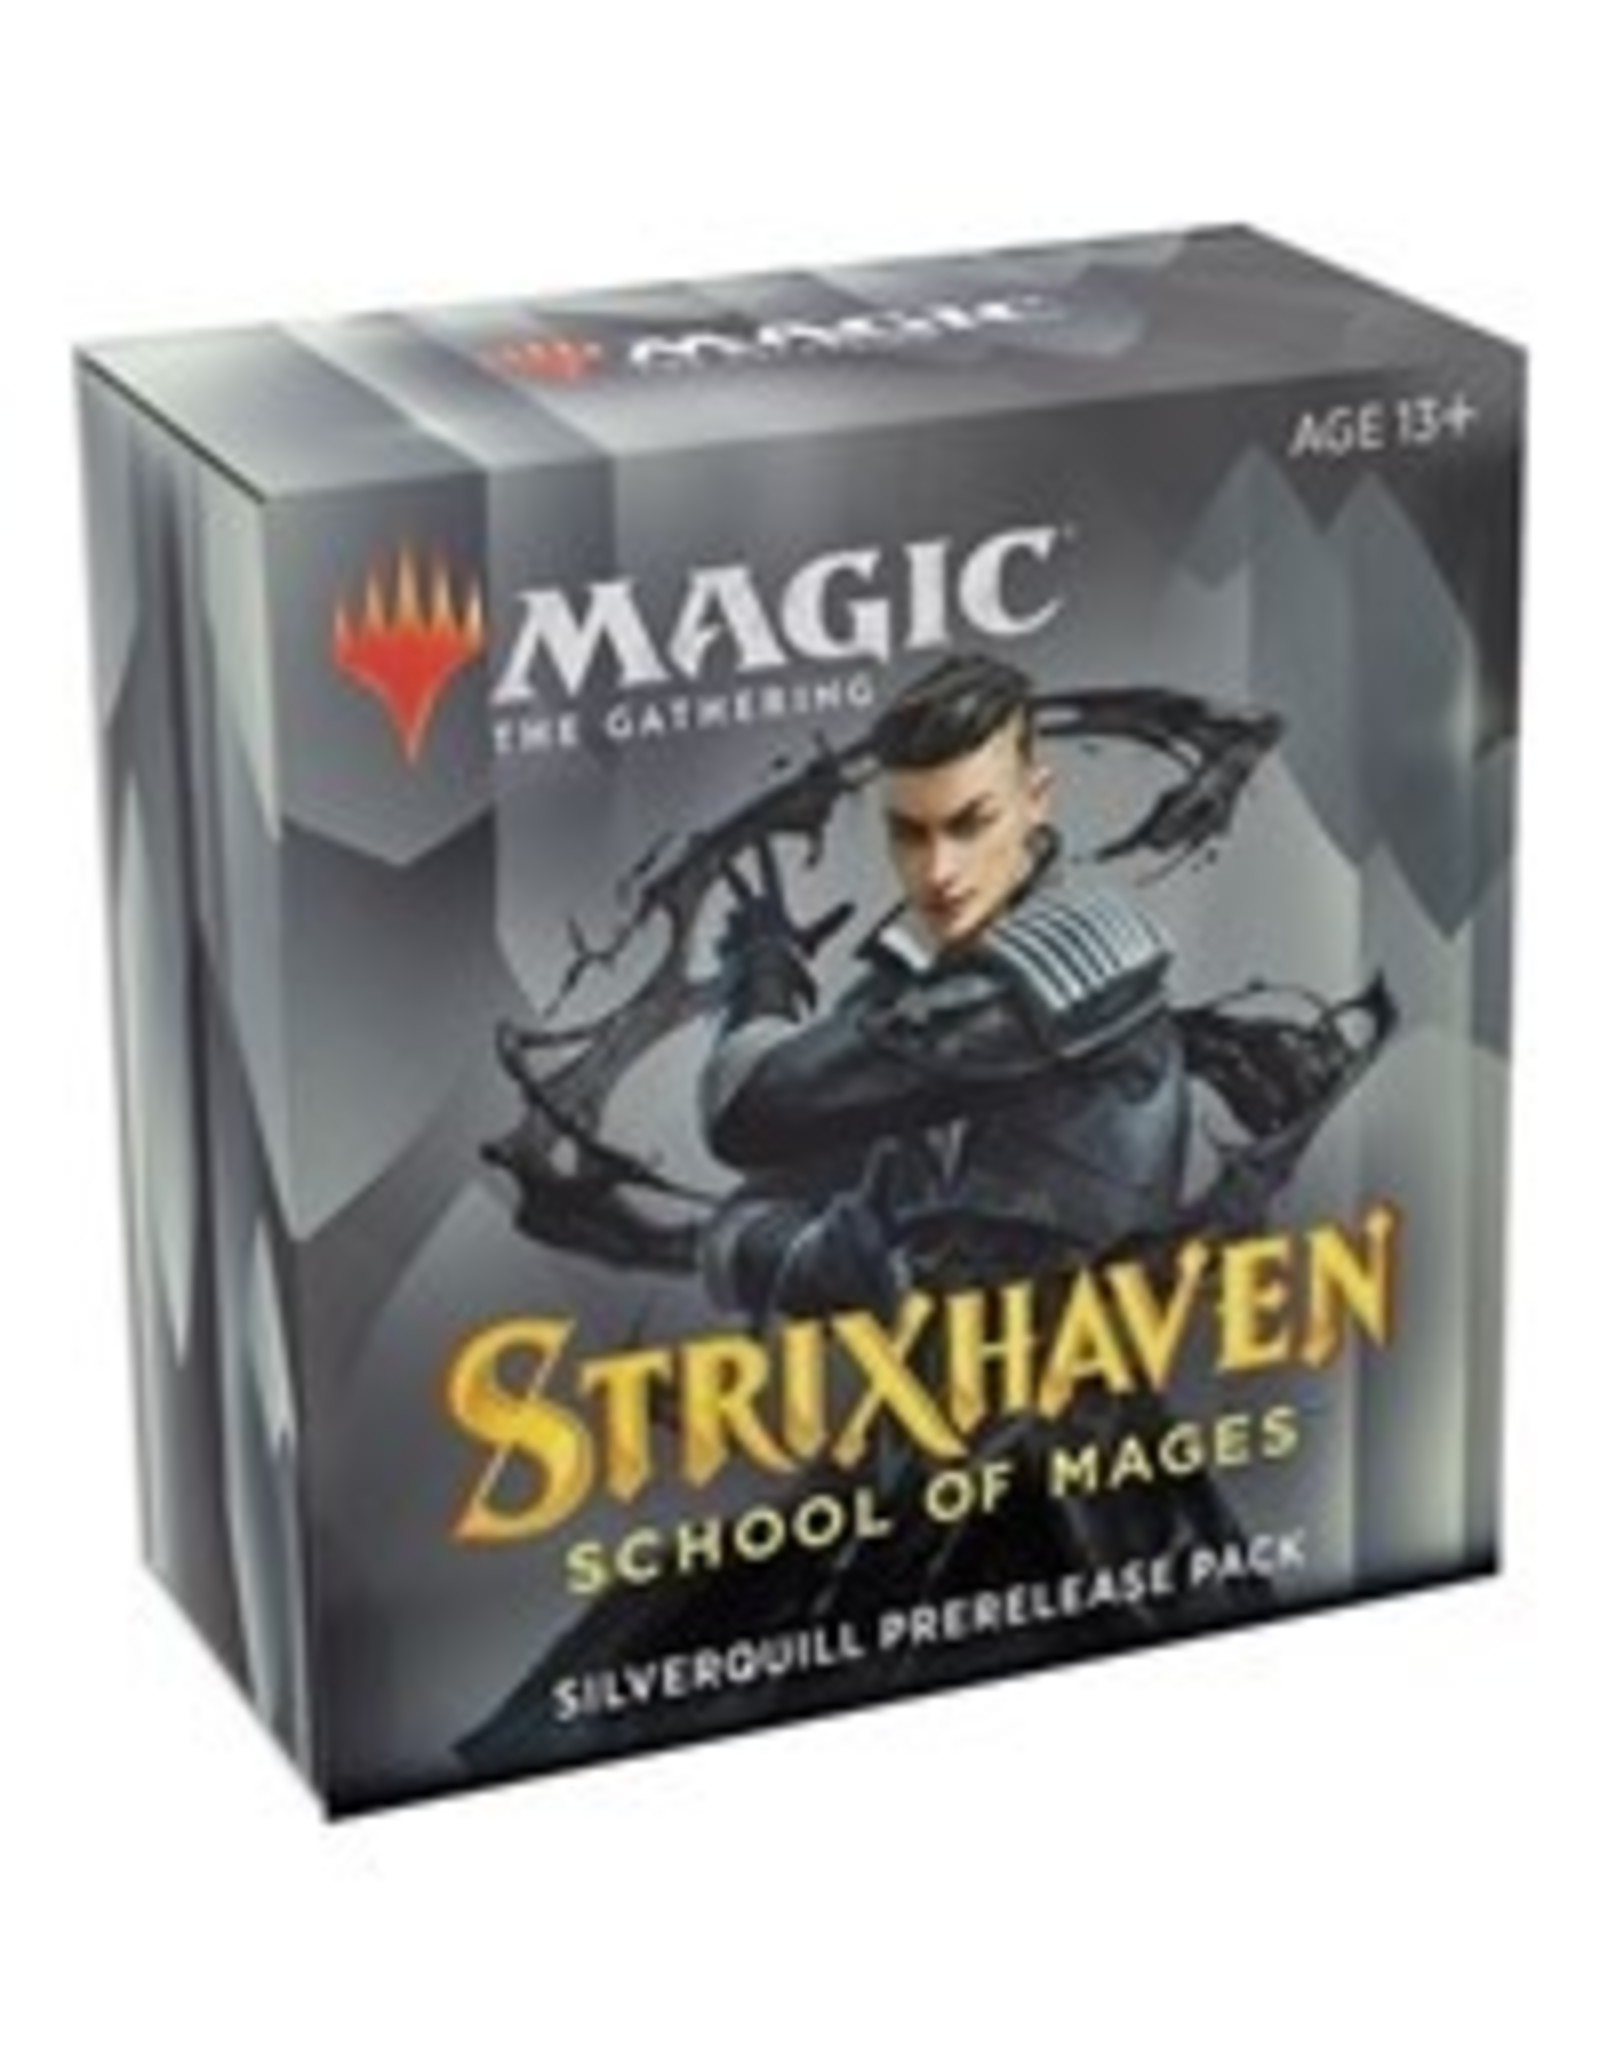 Magic Strixhaven: School of Mages - Prerelease Pack [Silverquill]